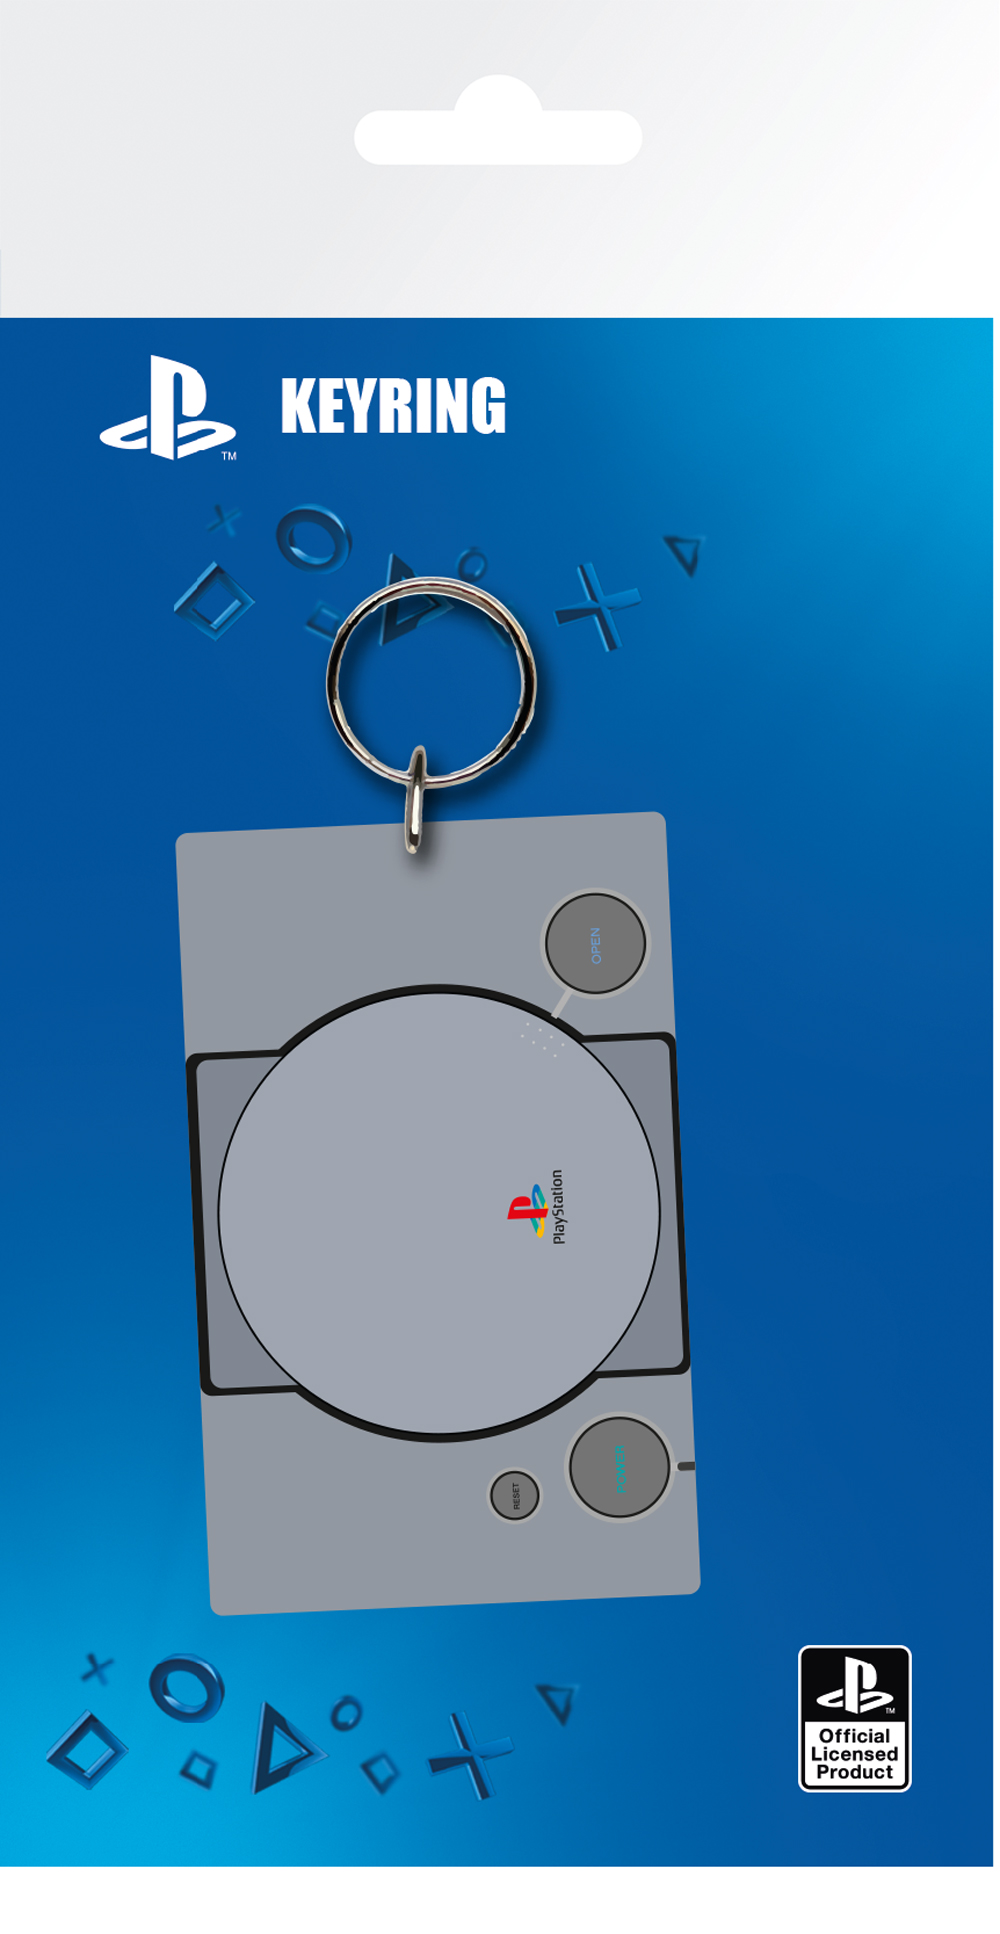 Playstation keyring